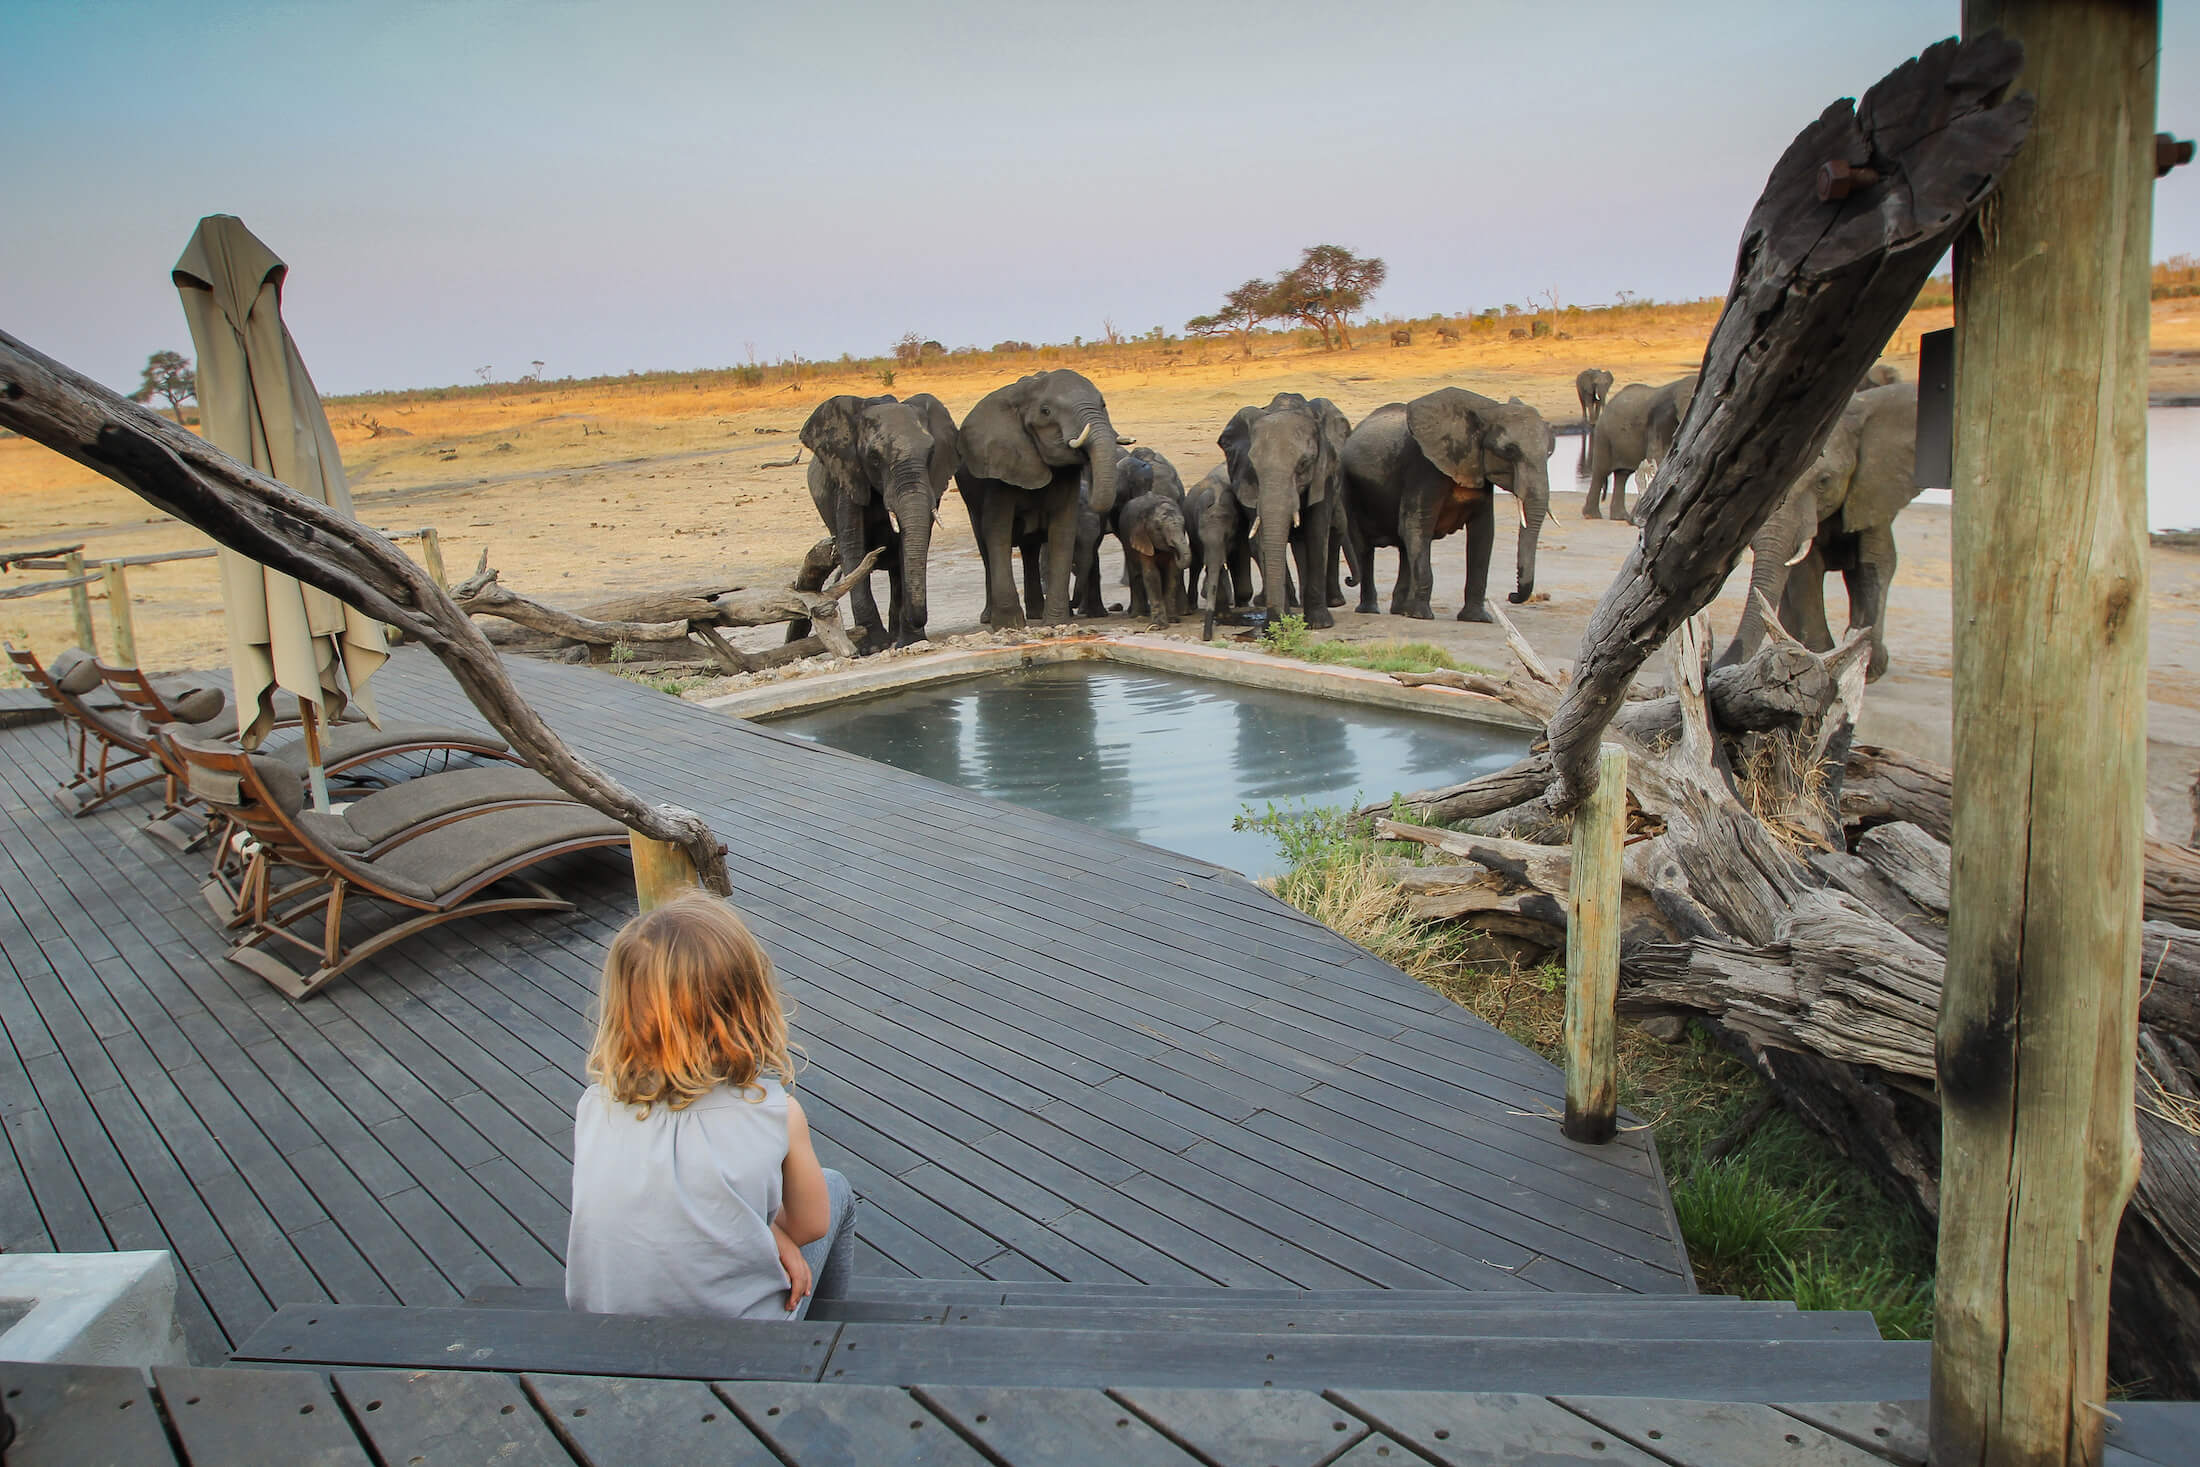 Clever water troughs, like this one, can entice wildlife to come right into camp. © Gary Lotter